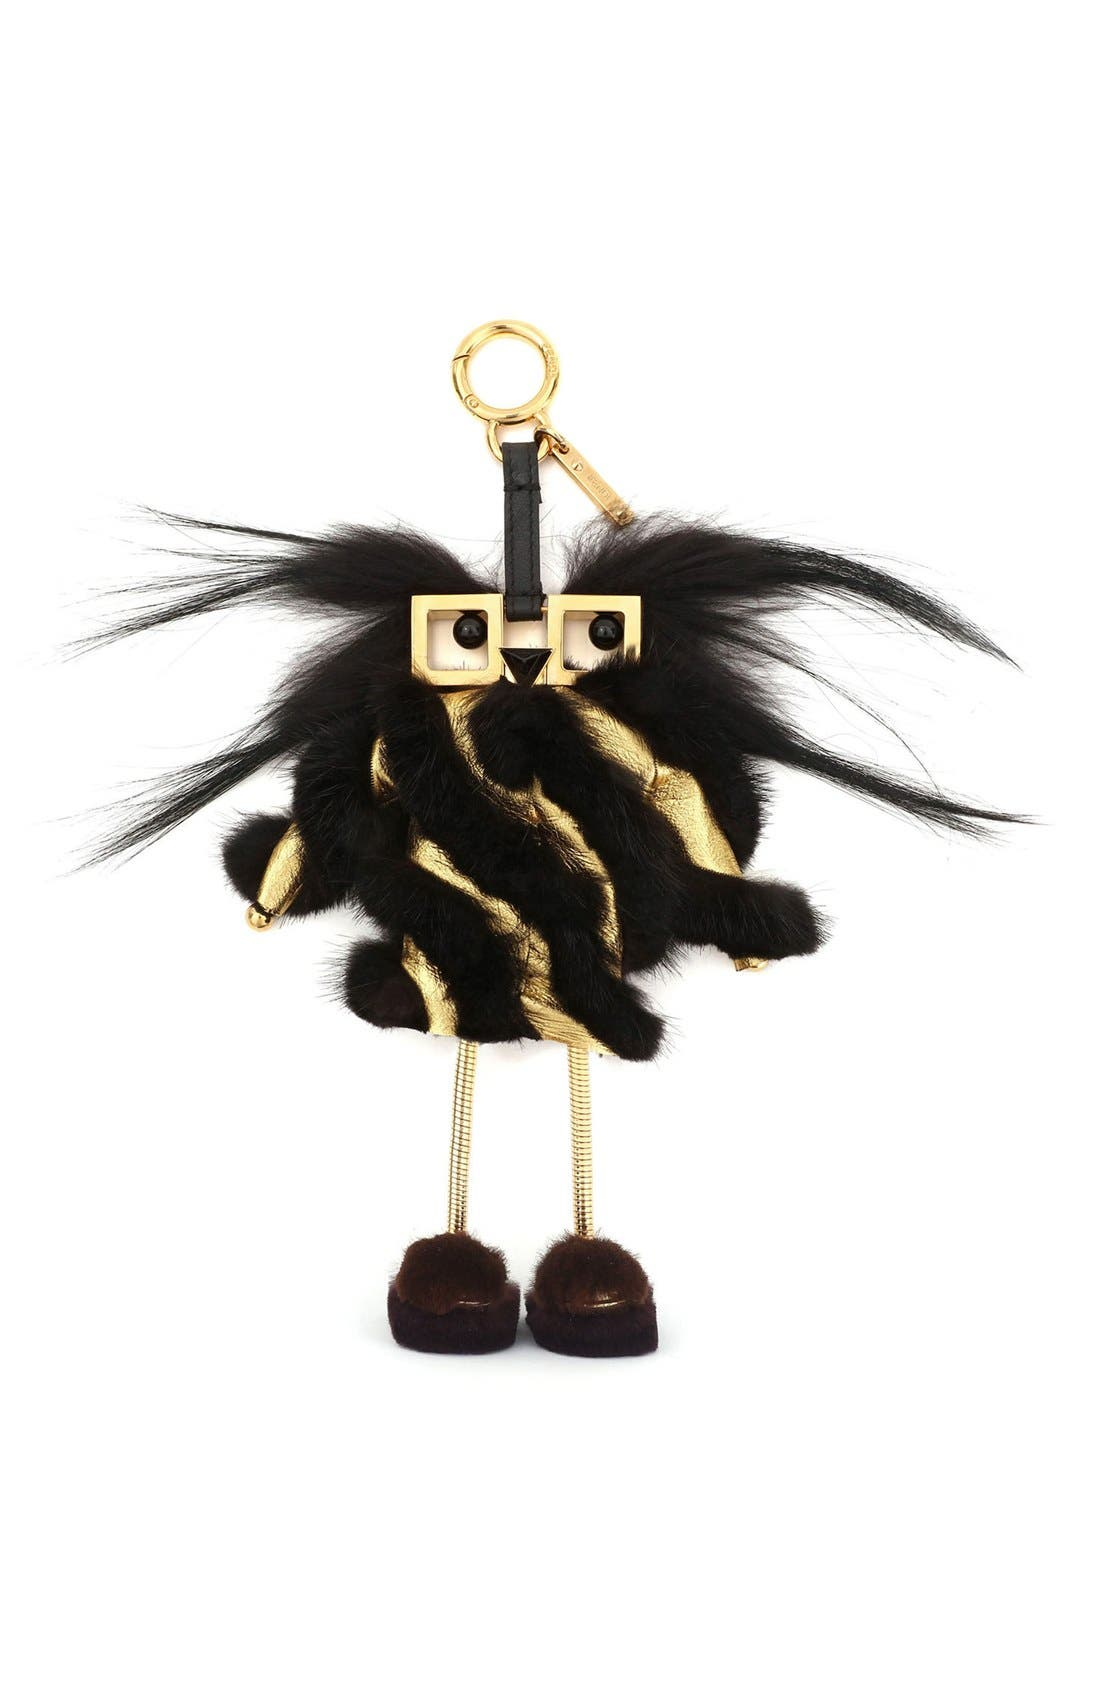 Main Image - Fendi Faces Hypnoteyes Genuine Fur Bag Charm with Slippers